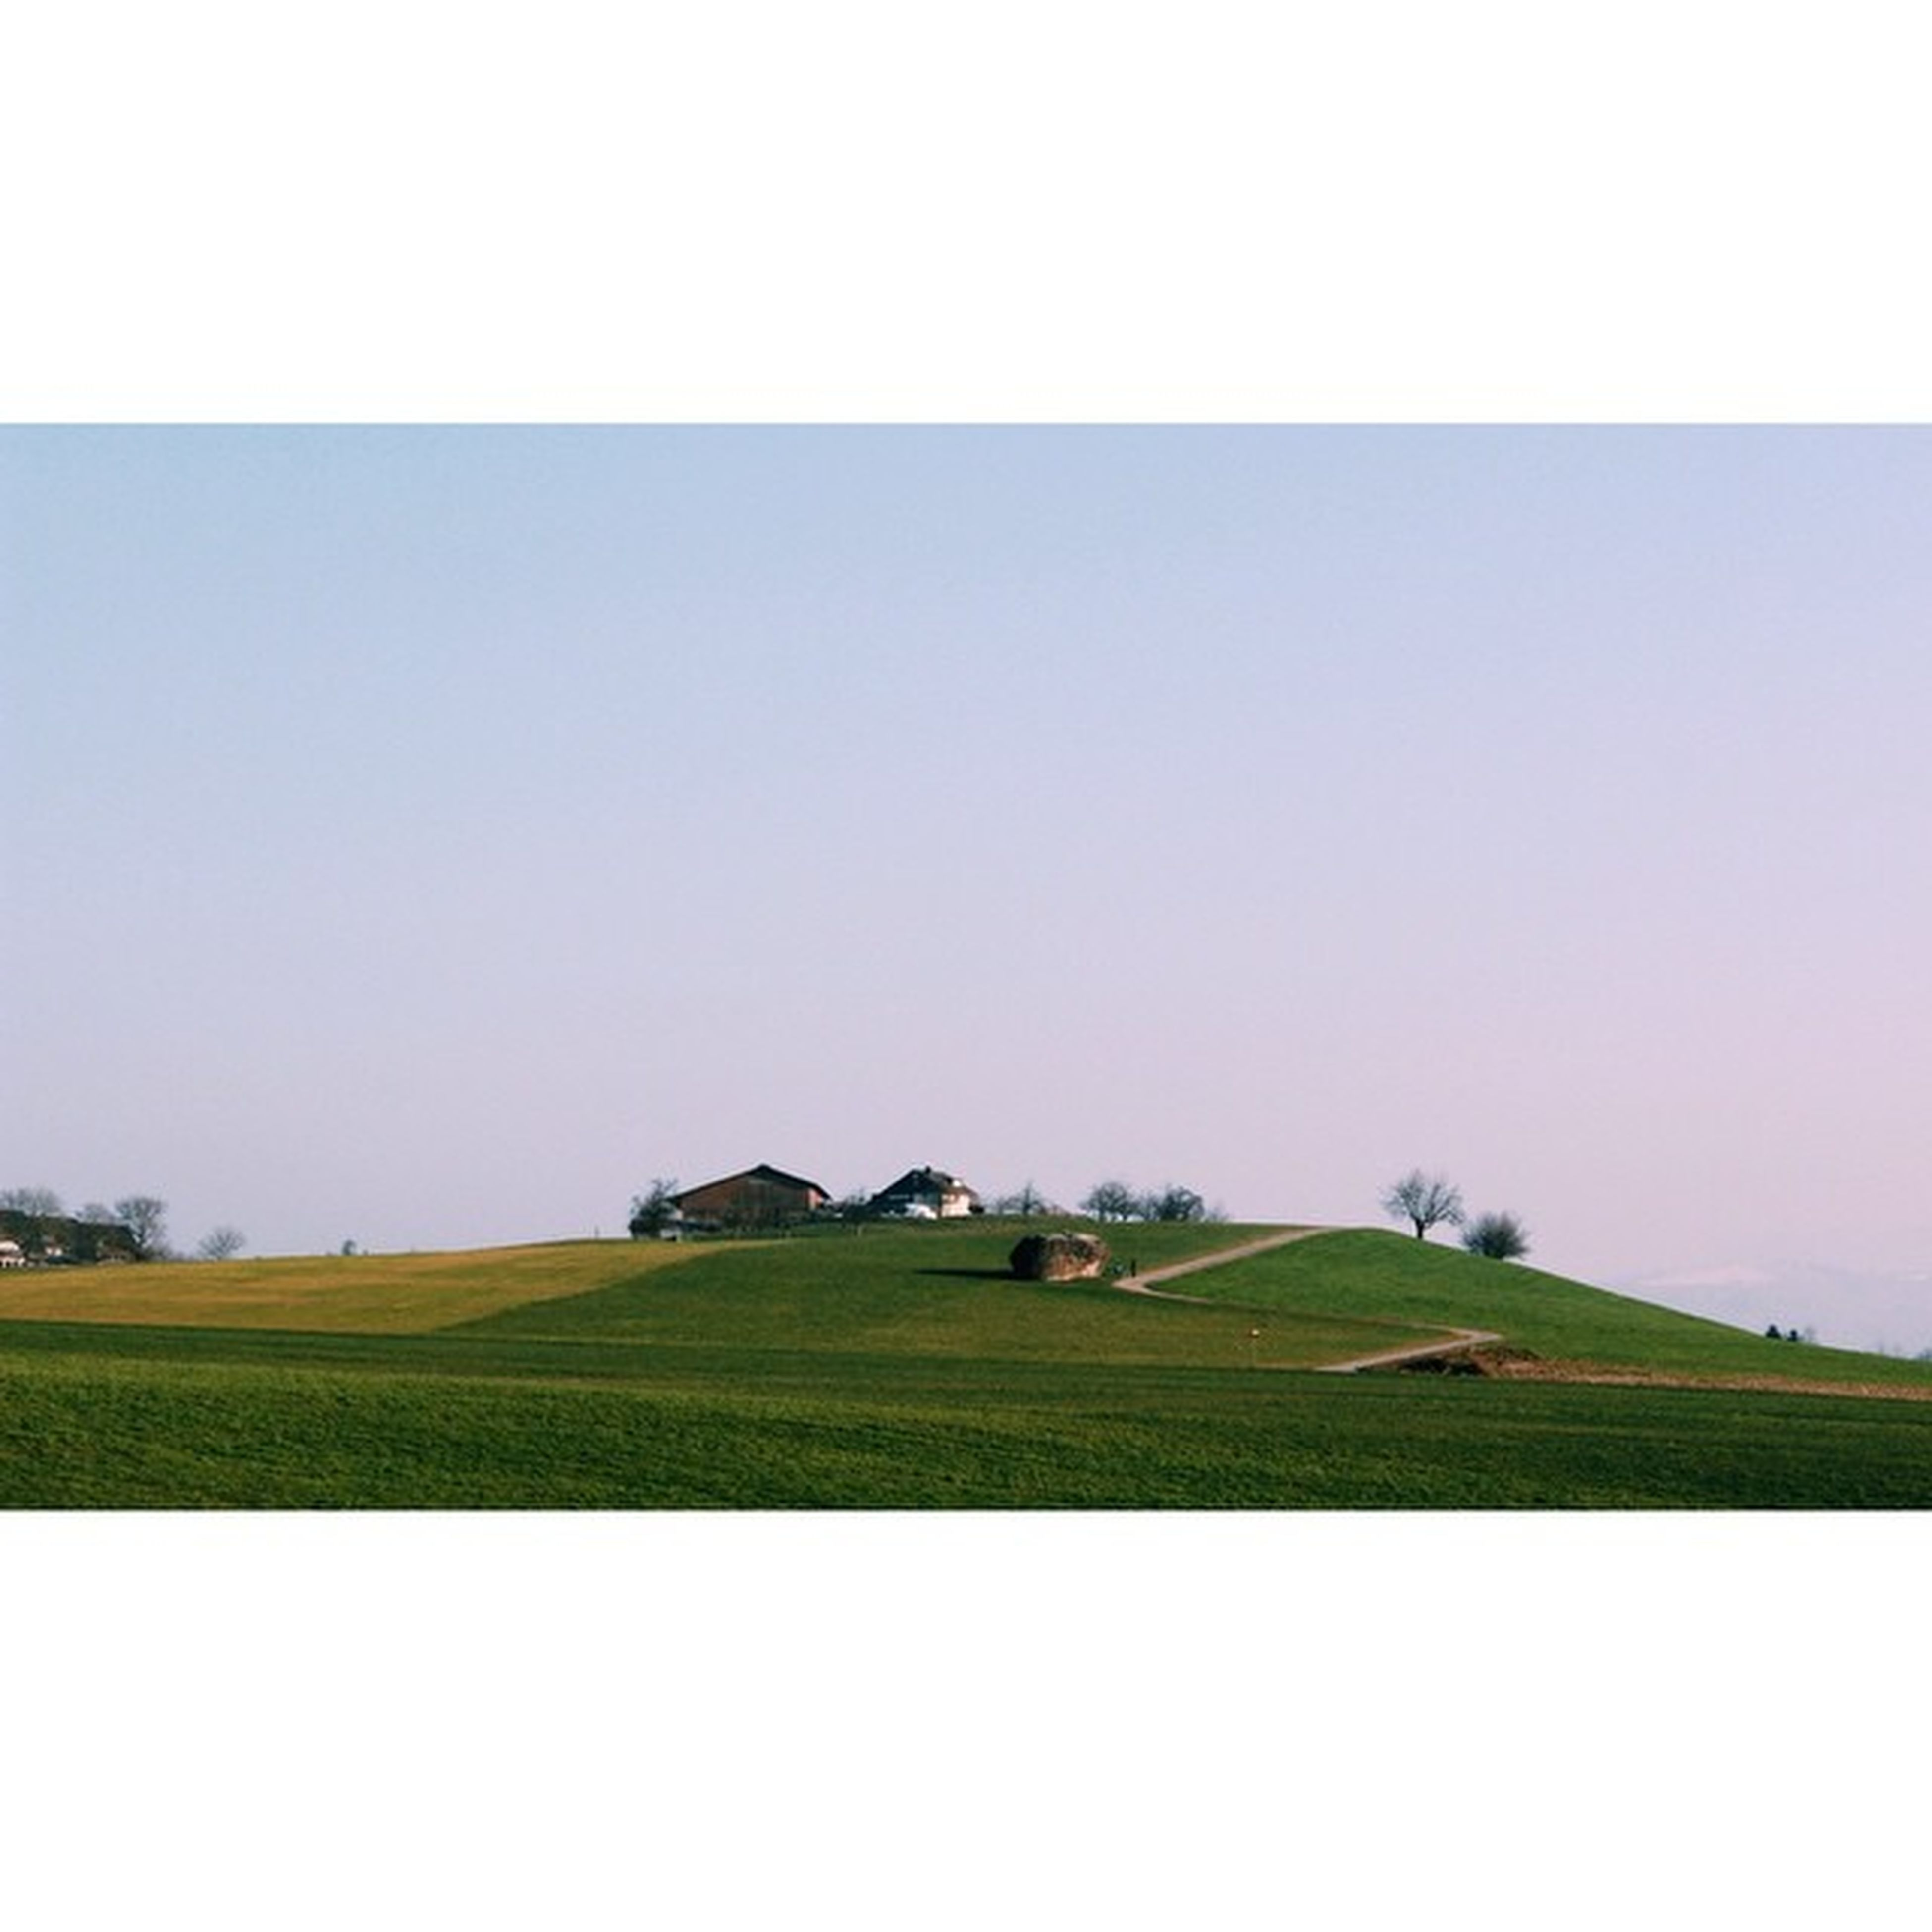 field, copy space, clear sky, landscape, rural scene, agriculture, grass, tranquil scene, tranquility, farm, scenics, beauty in nature, nature, green color, growth, grassy, crop, horizon over land, day, cultivated land